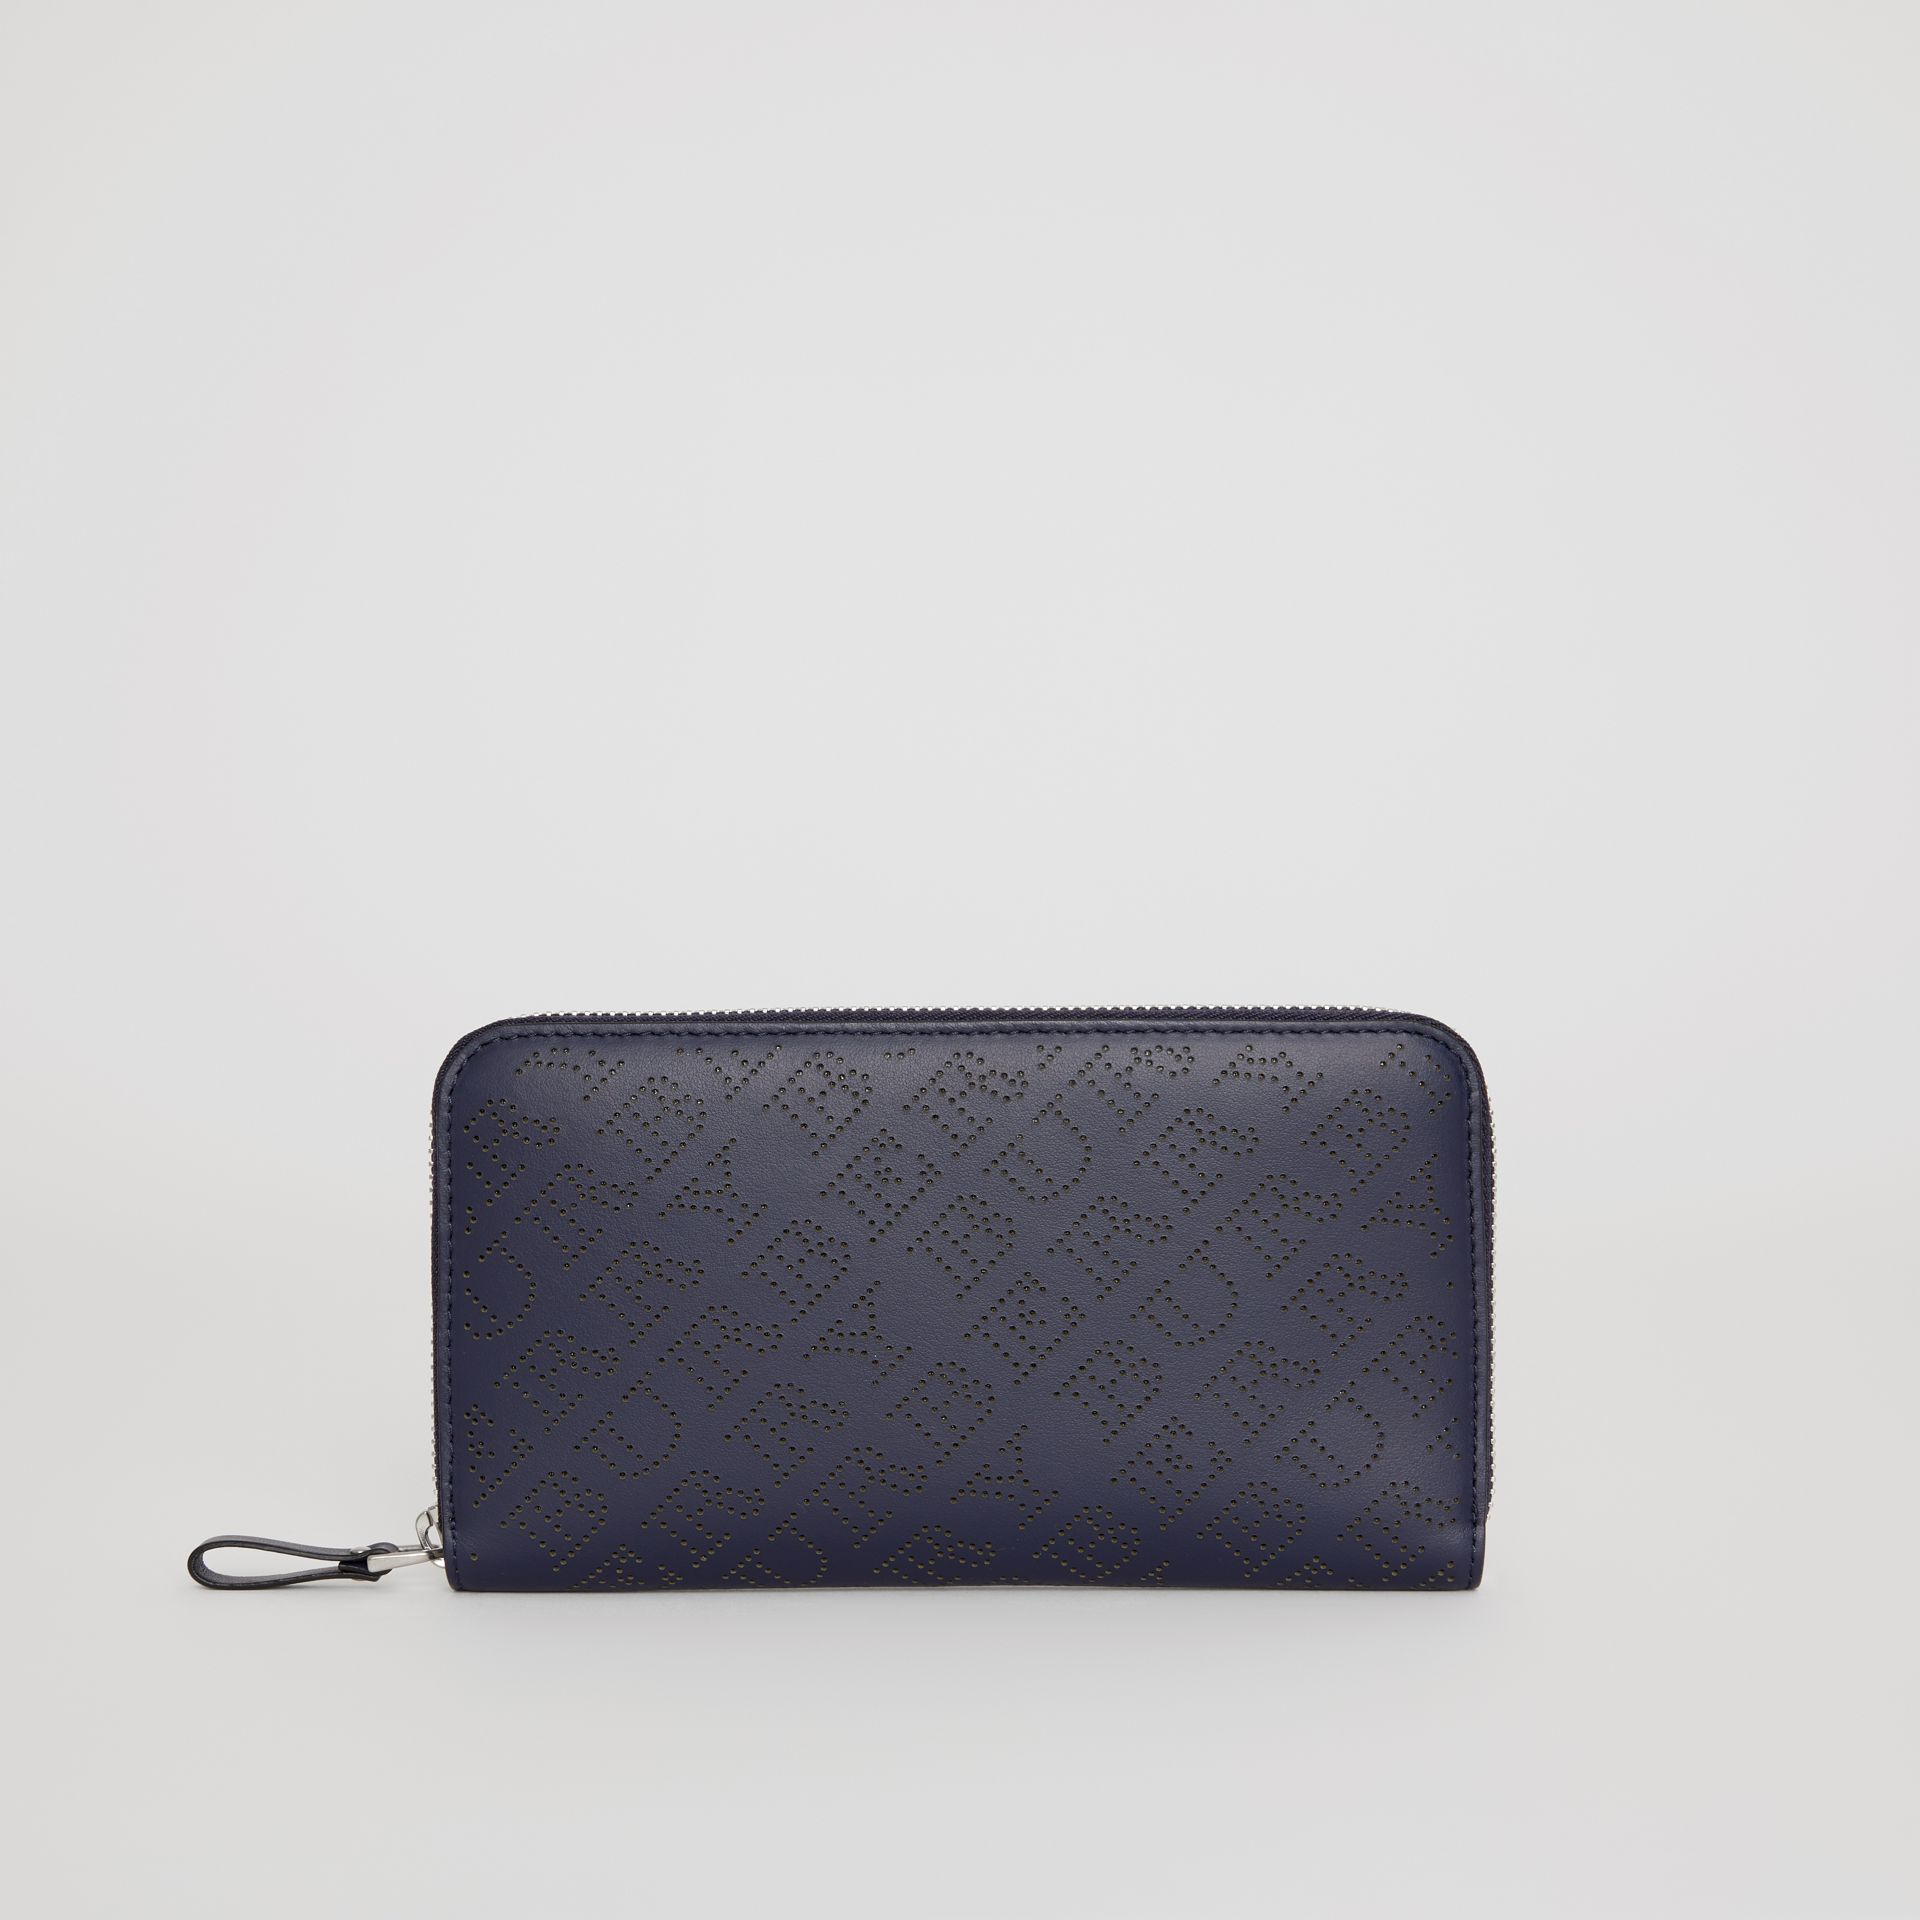 Perforated Leather Ziparound Wallet in Navy - Women | Burberry Australia - gallery image 2